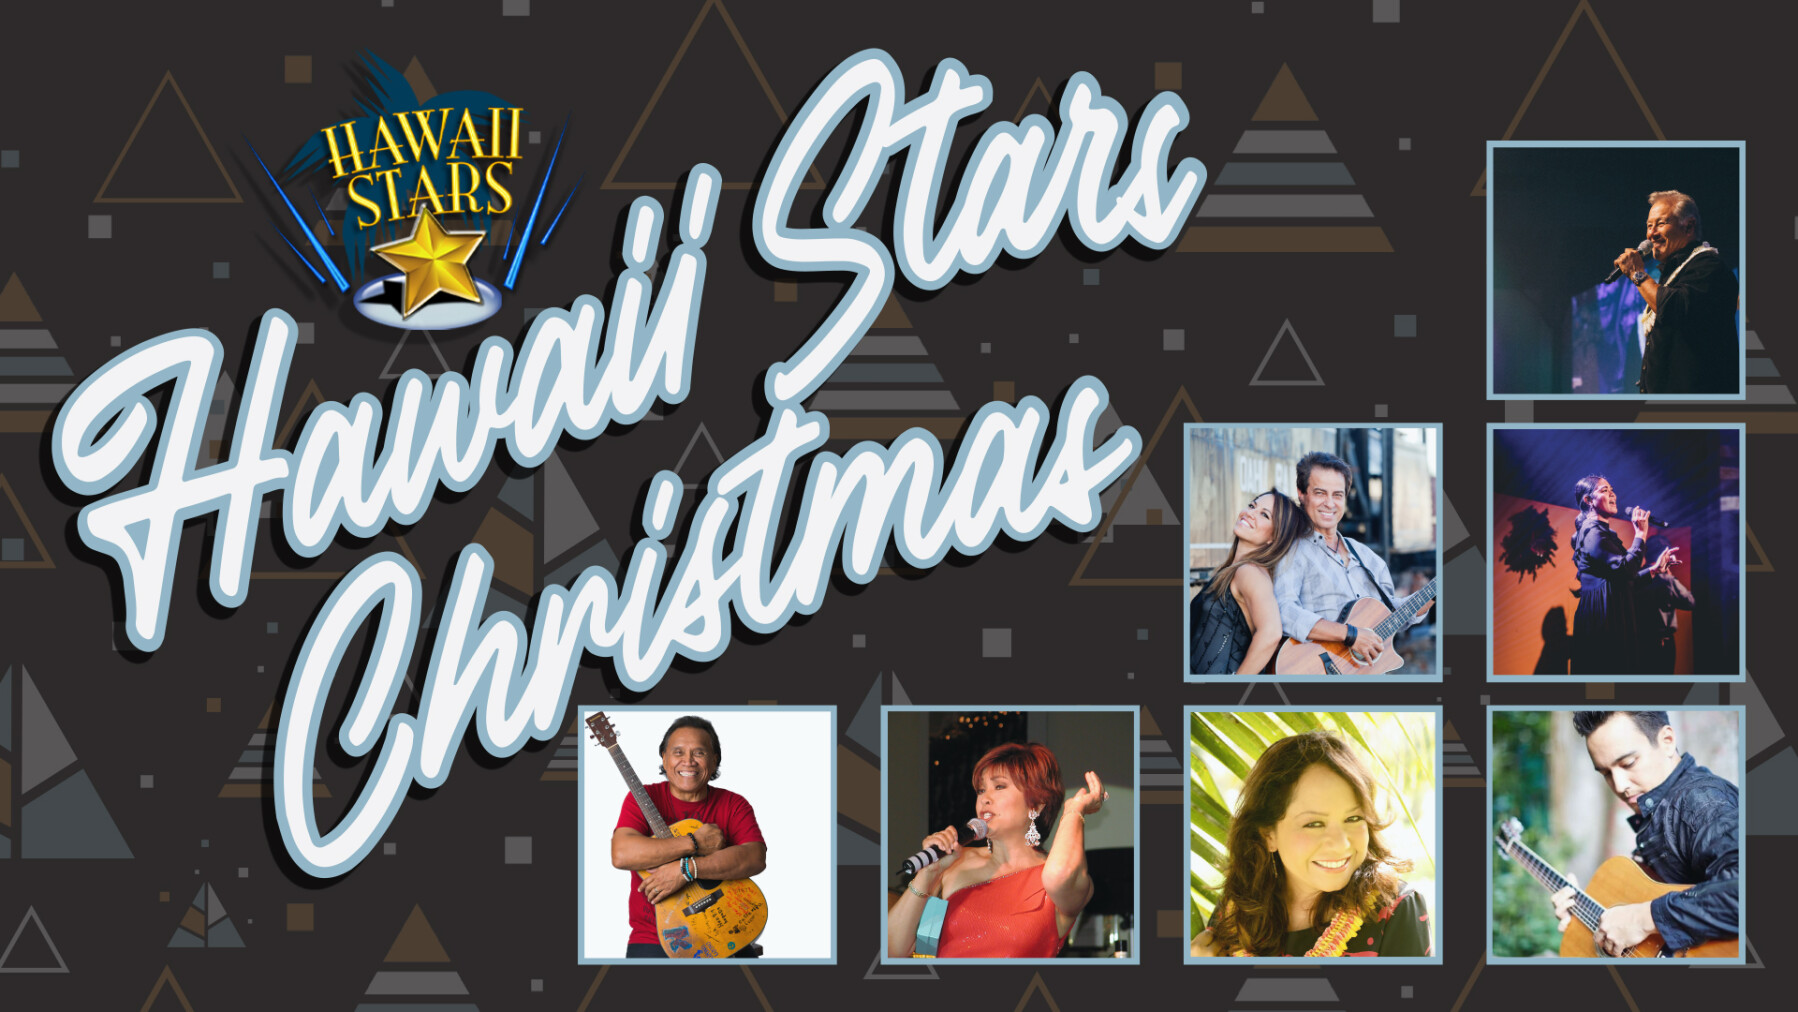 Hawaii Stars Christmas